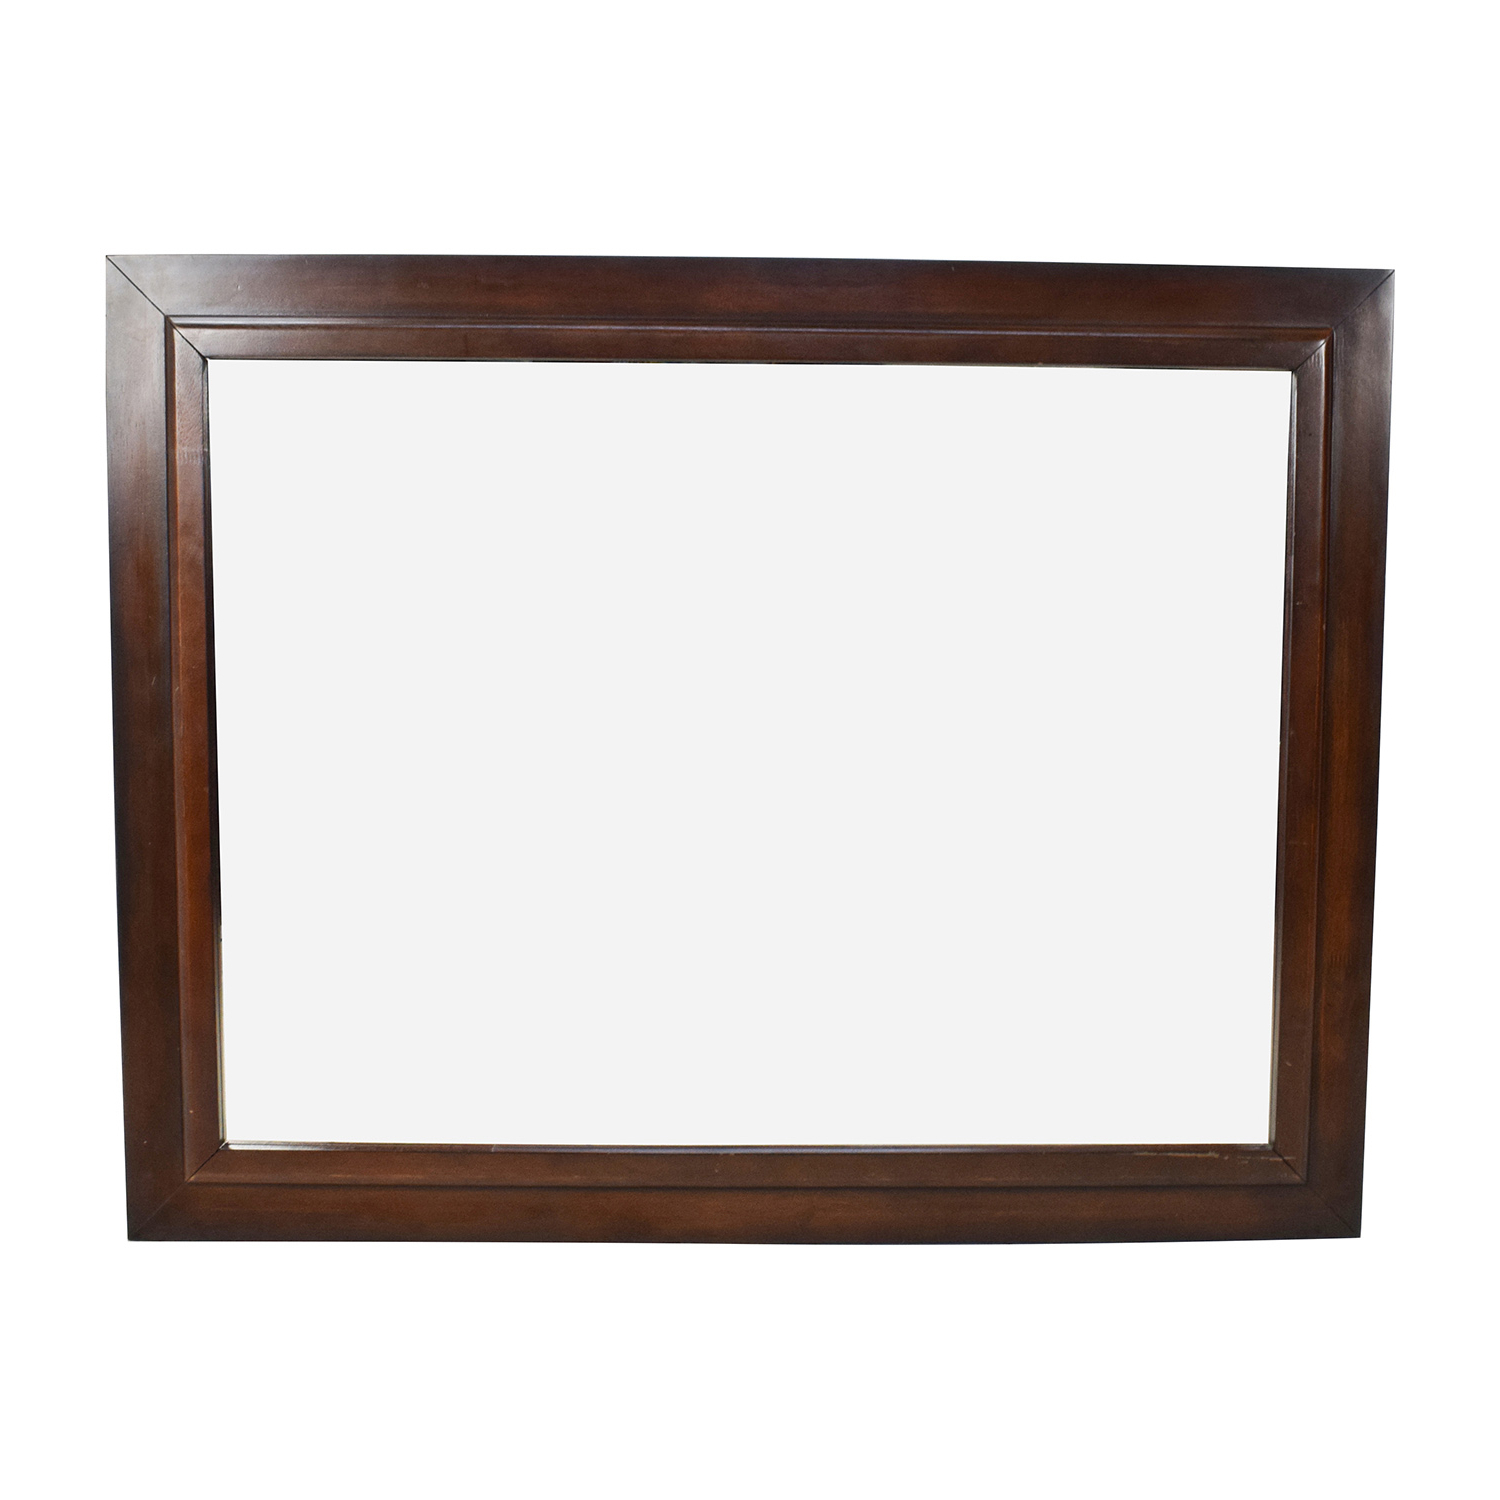 [%80% Off – Large Square Wood Framed Wall Mirror / Decor Pertaining To Widely Used Large Wood Wall Mirrors|Large Wood Wall Mirrors Pertaining To Most Up To Date 80% Off – Large Square Wood Framed Wall Mirror / Decor|Trendy Large Wood Wall Mirrors Throughout 80% Off – Large Square Wood Framed Wall Mirror / Decor|Newest 80% Off – Large Square Wood Framed Wall Mirror / Decor Within Large Wood Wall Mirrors%] (View 2 of 20)